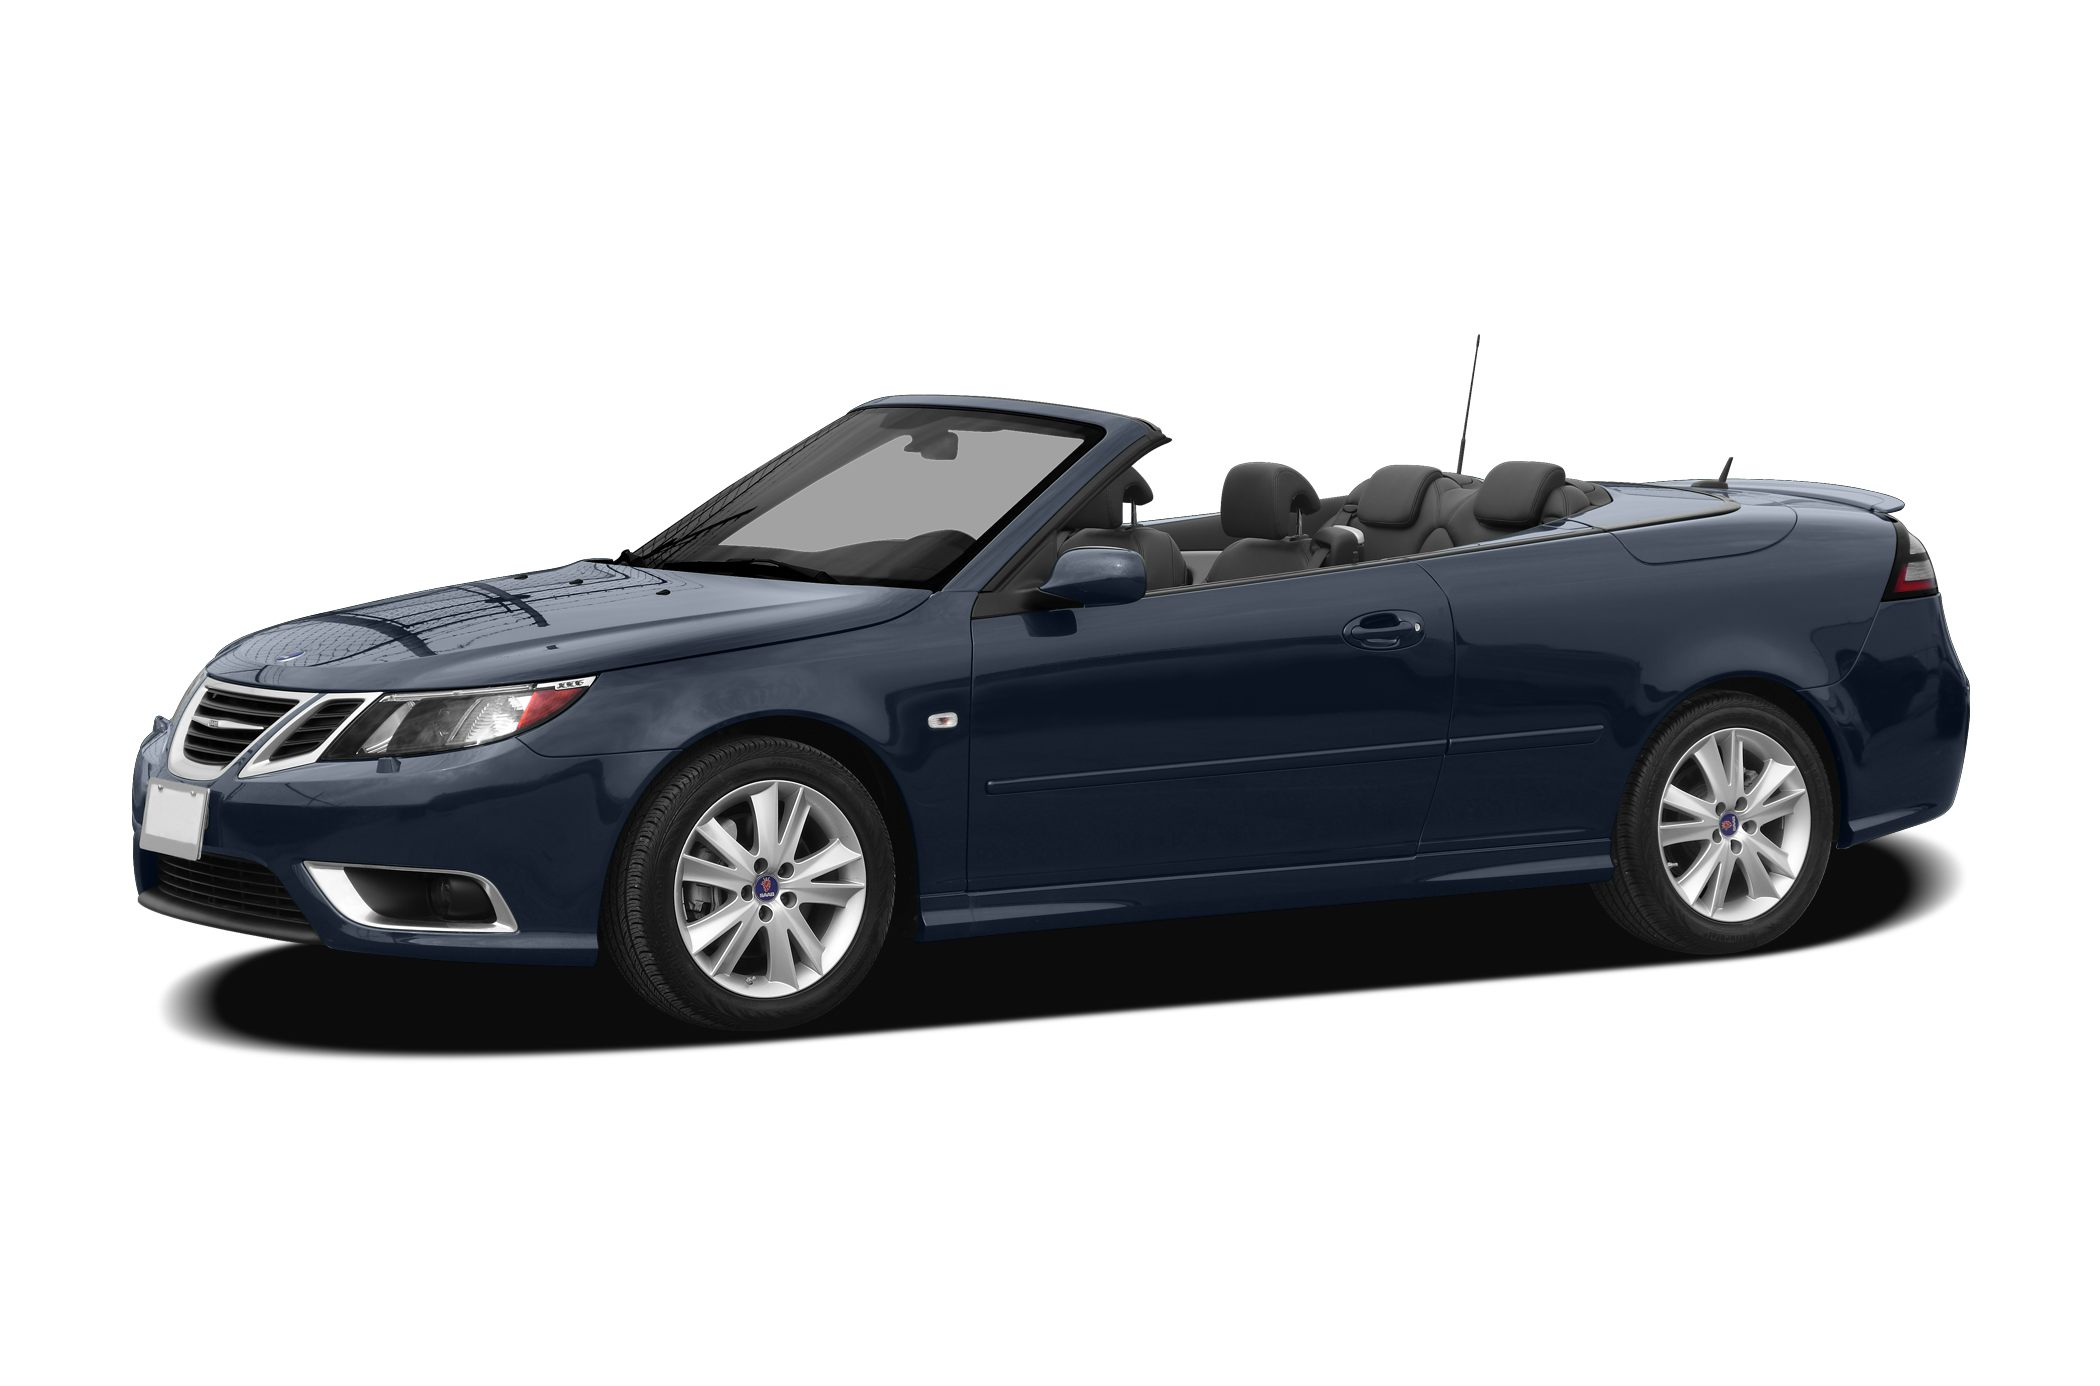 2008 Saab 9-3 Aero New Arrival Priced below Market This 2008 Saab 9-3 Aero Includes Leather Se